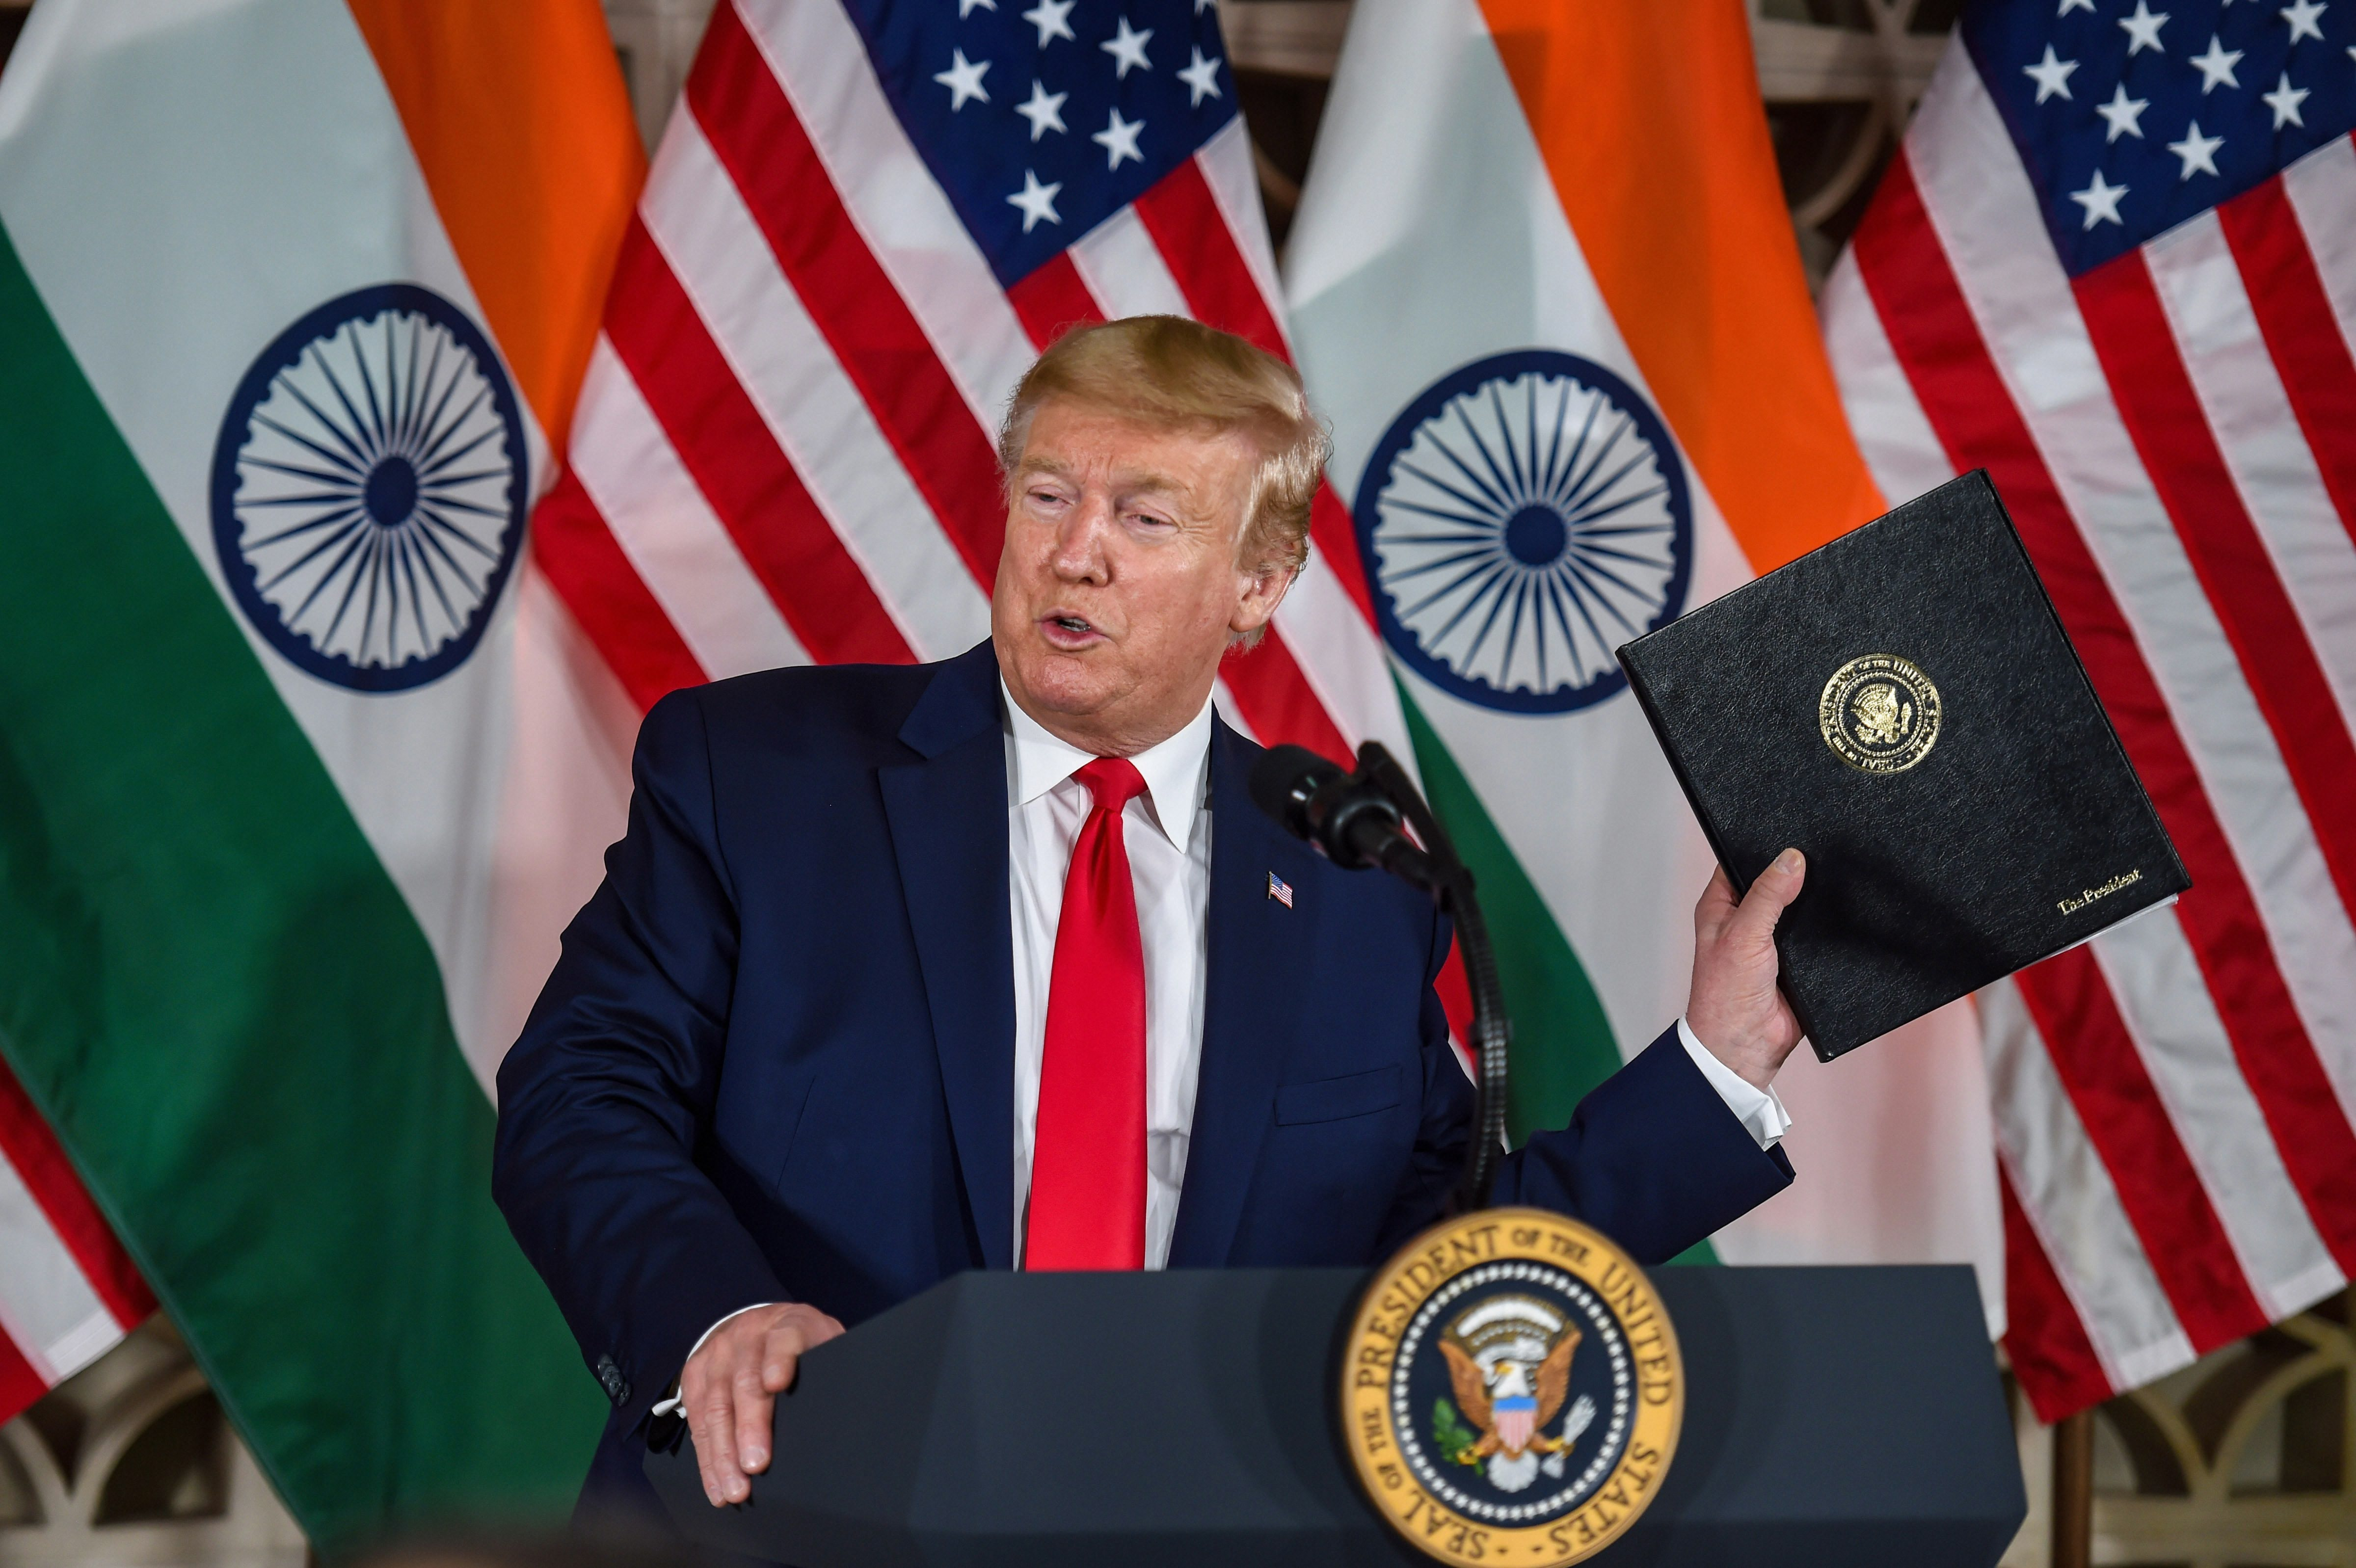 US President Donald Trump speaks during an interaction with business leaders at US embassy in New Delhi, Tuesday, February 25, 2020